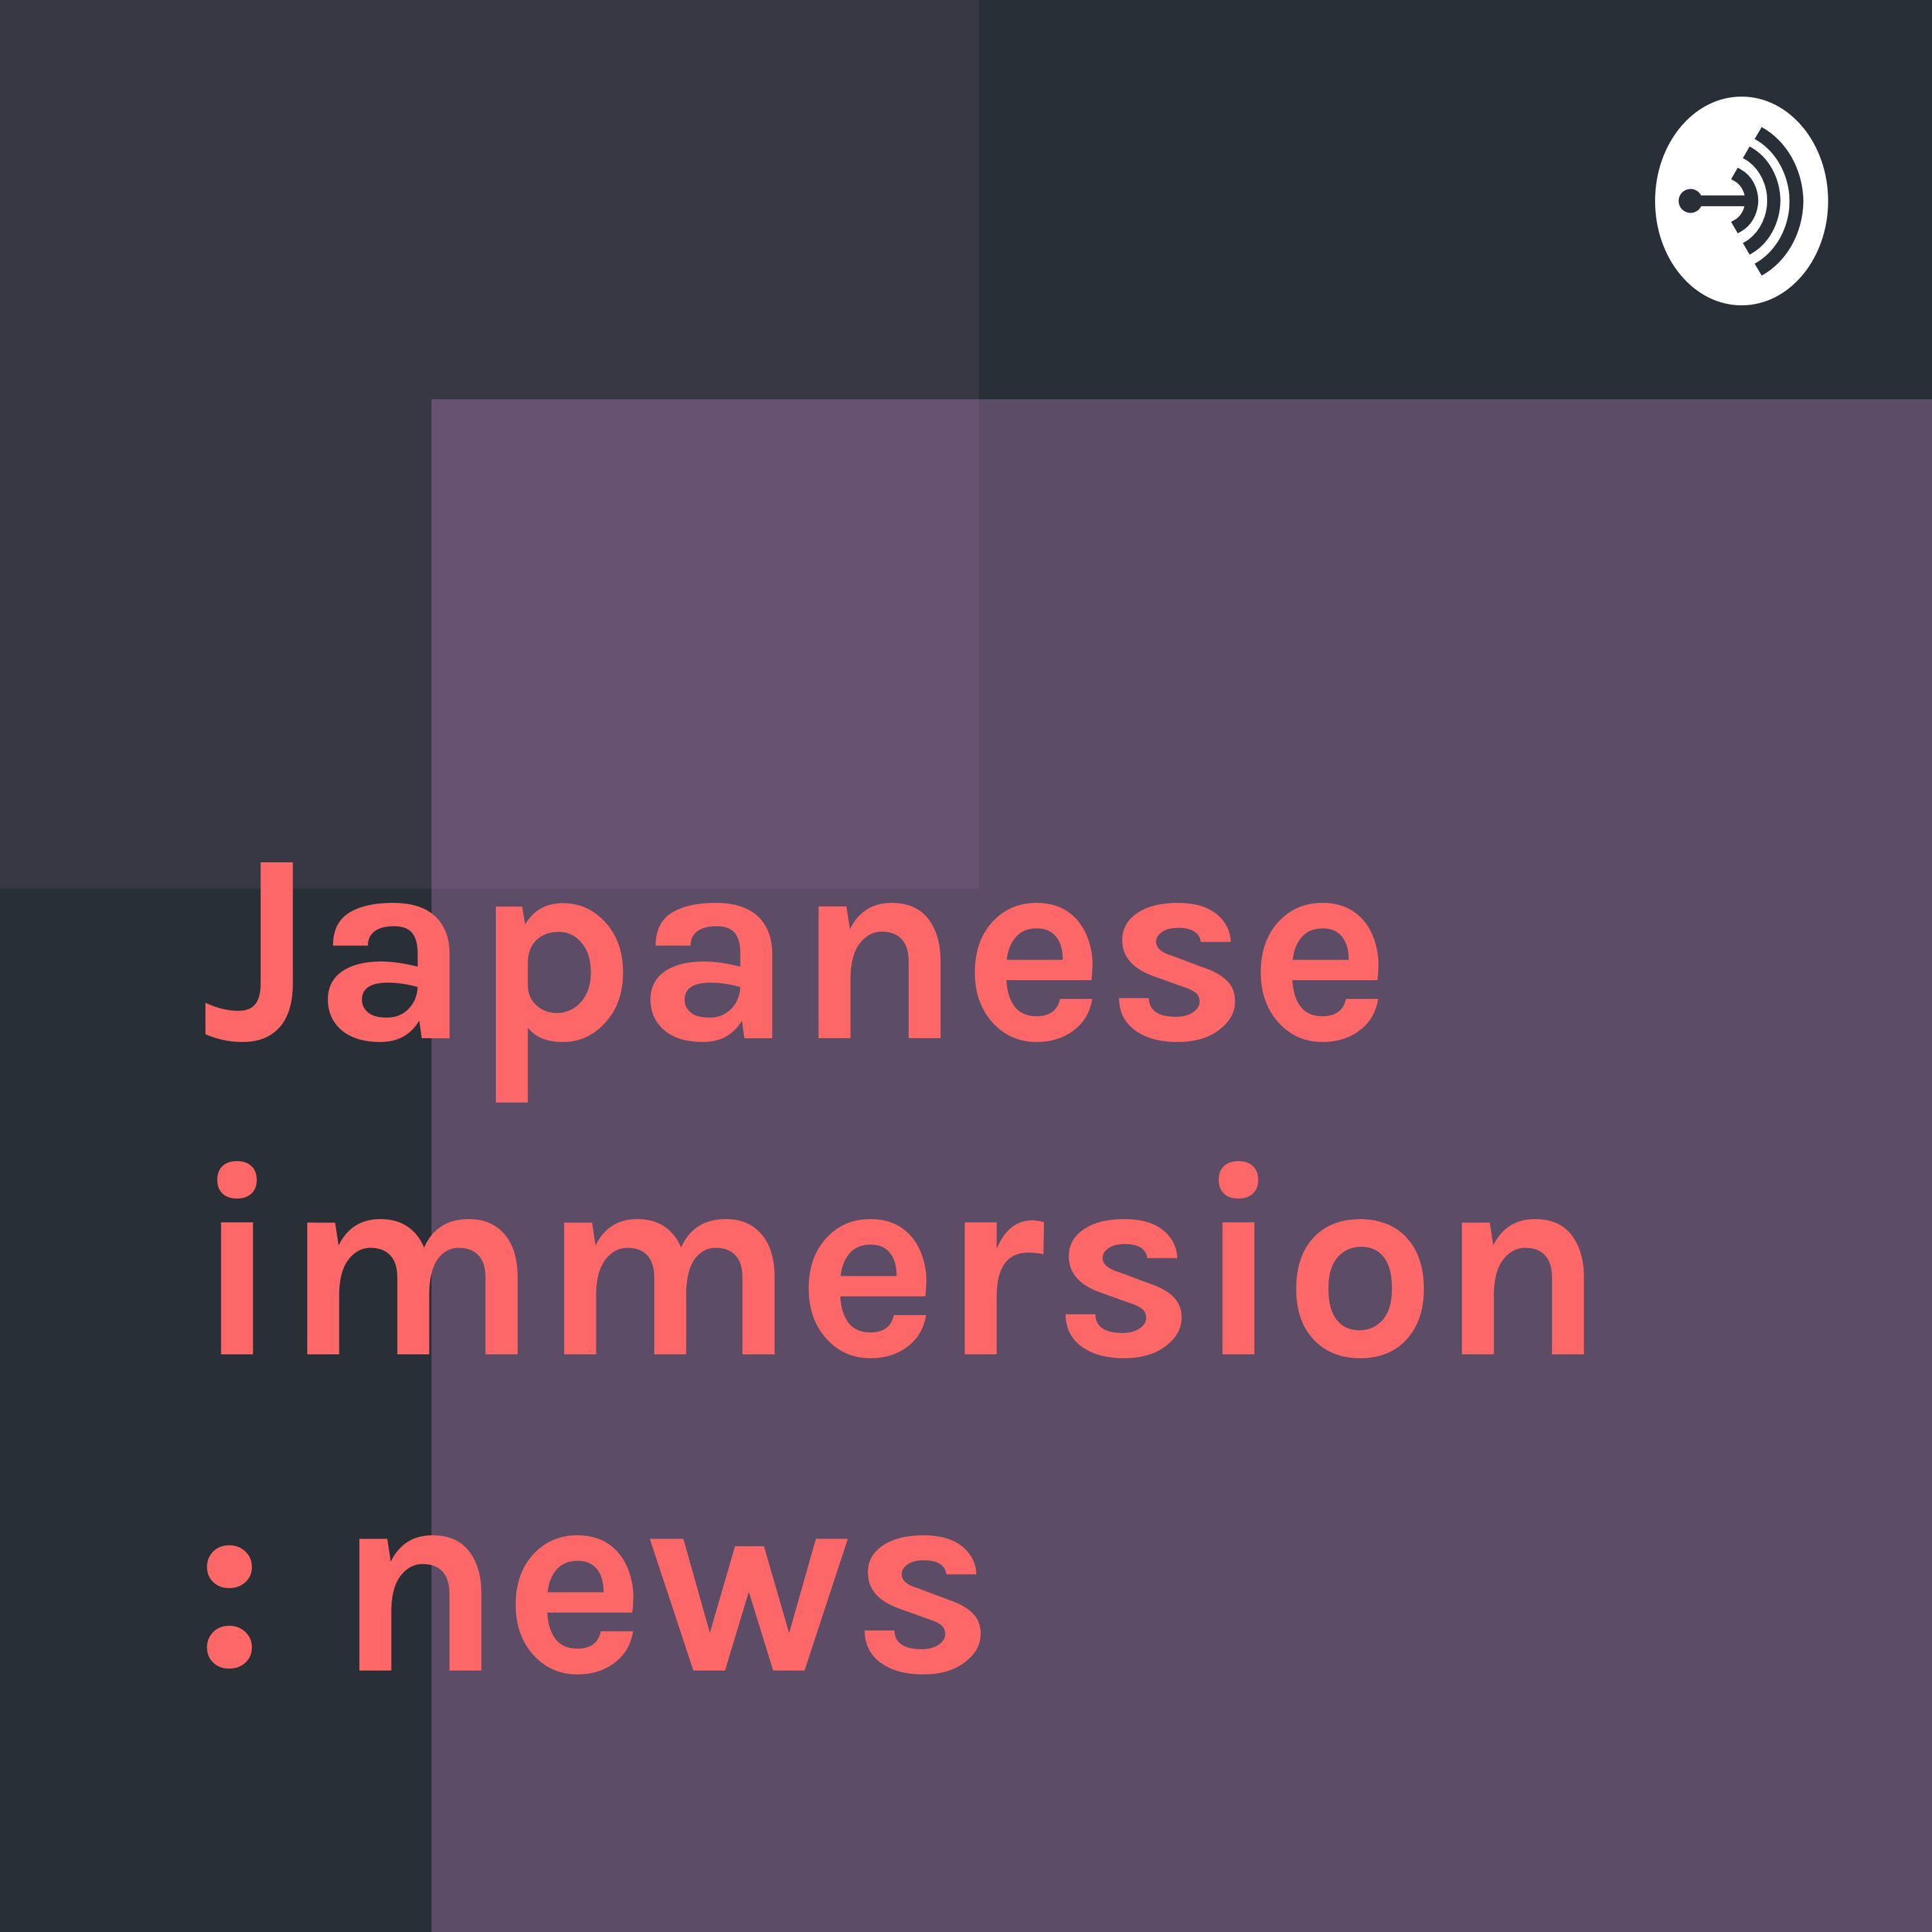 News – Japanese immersion